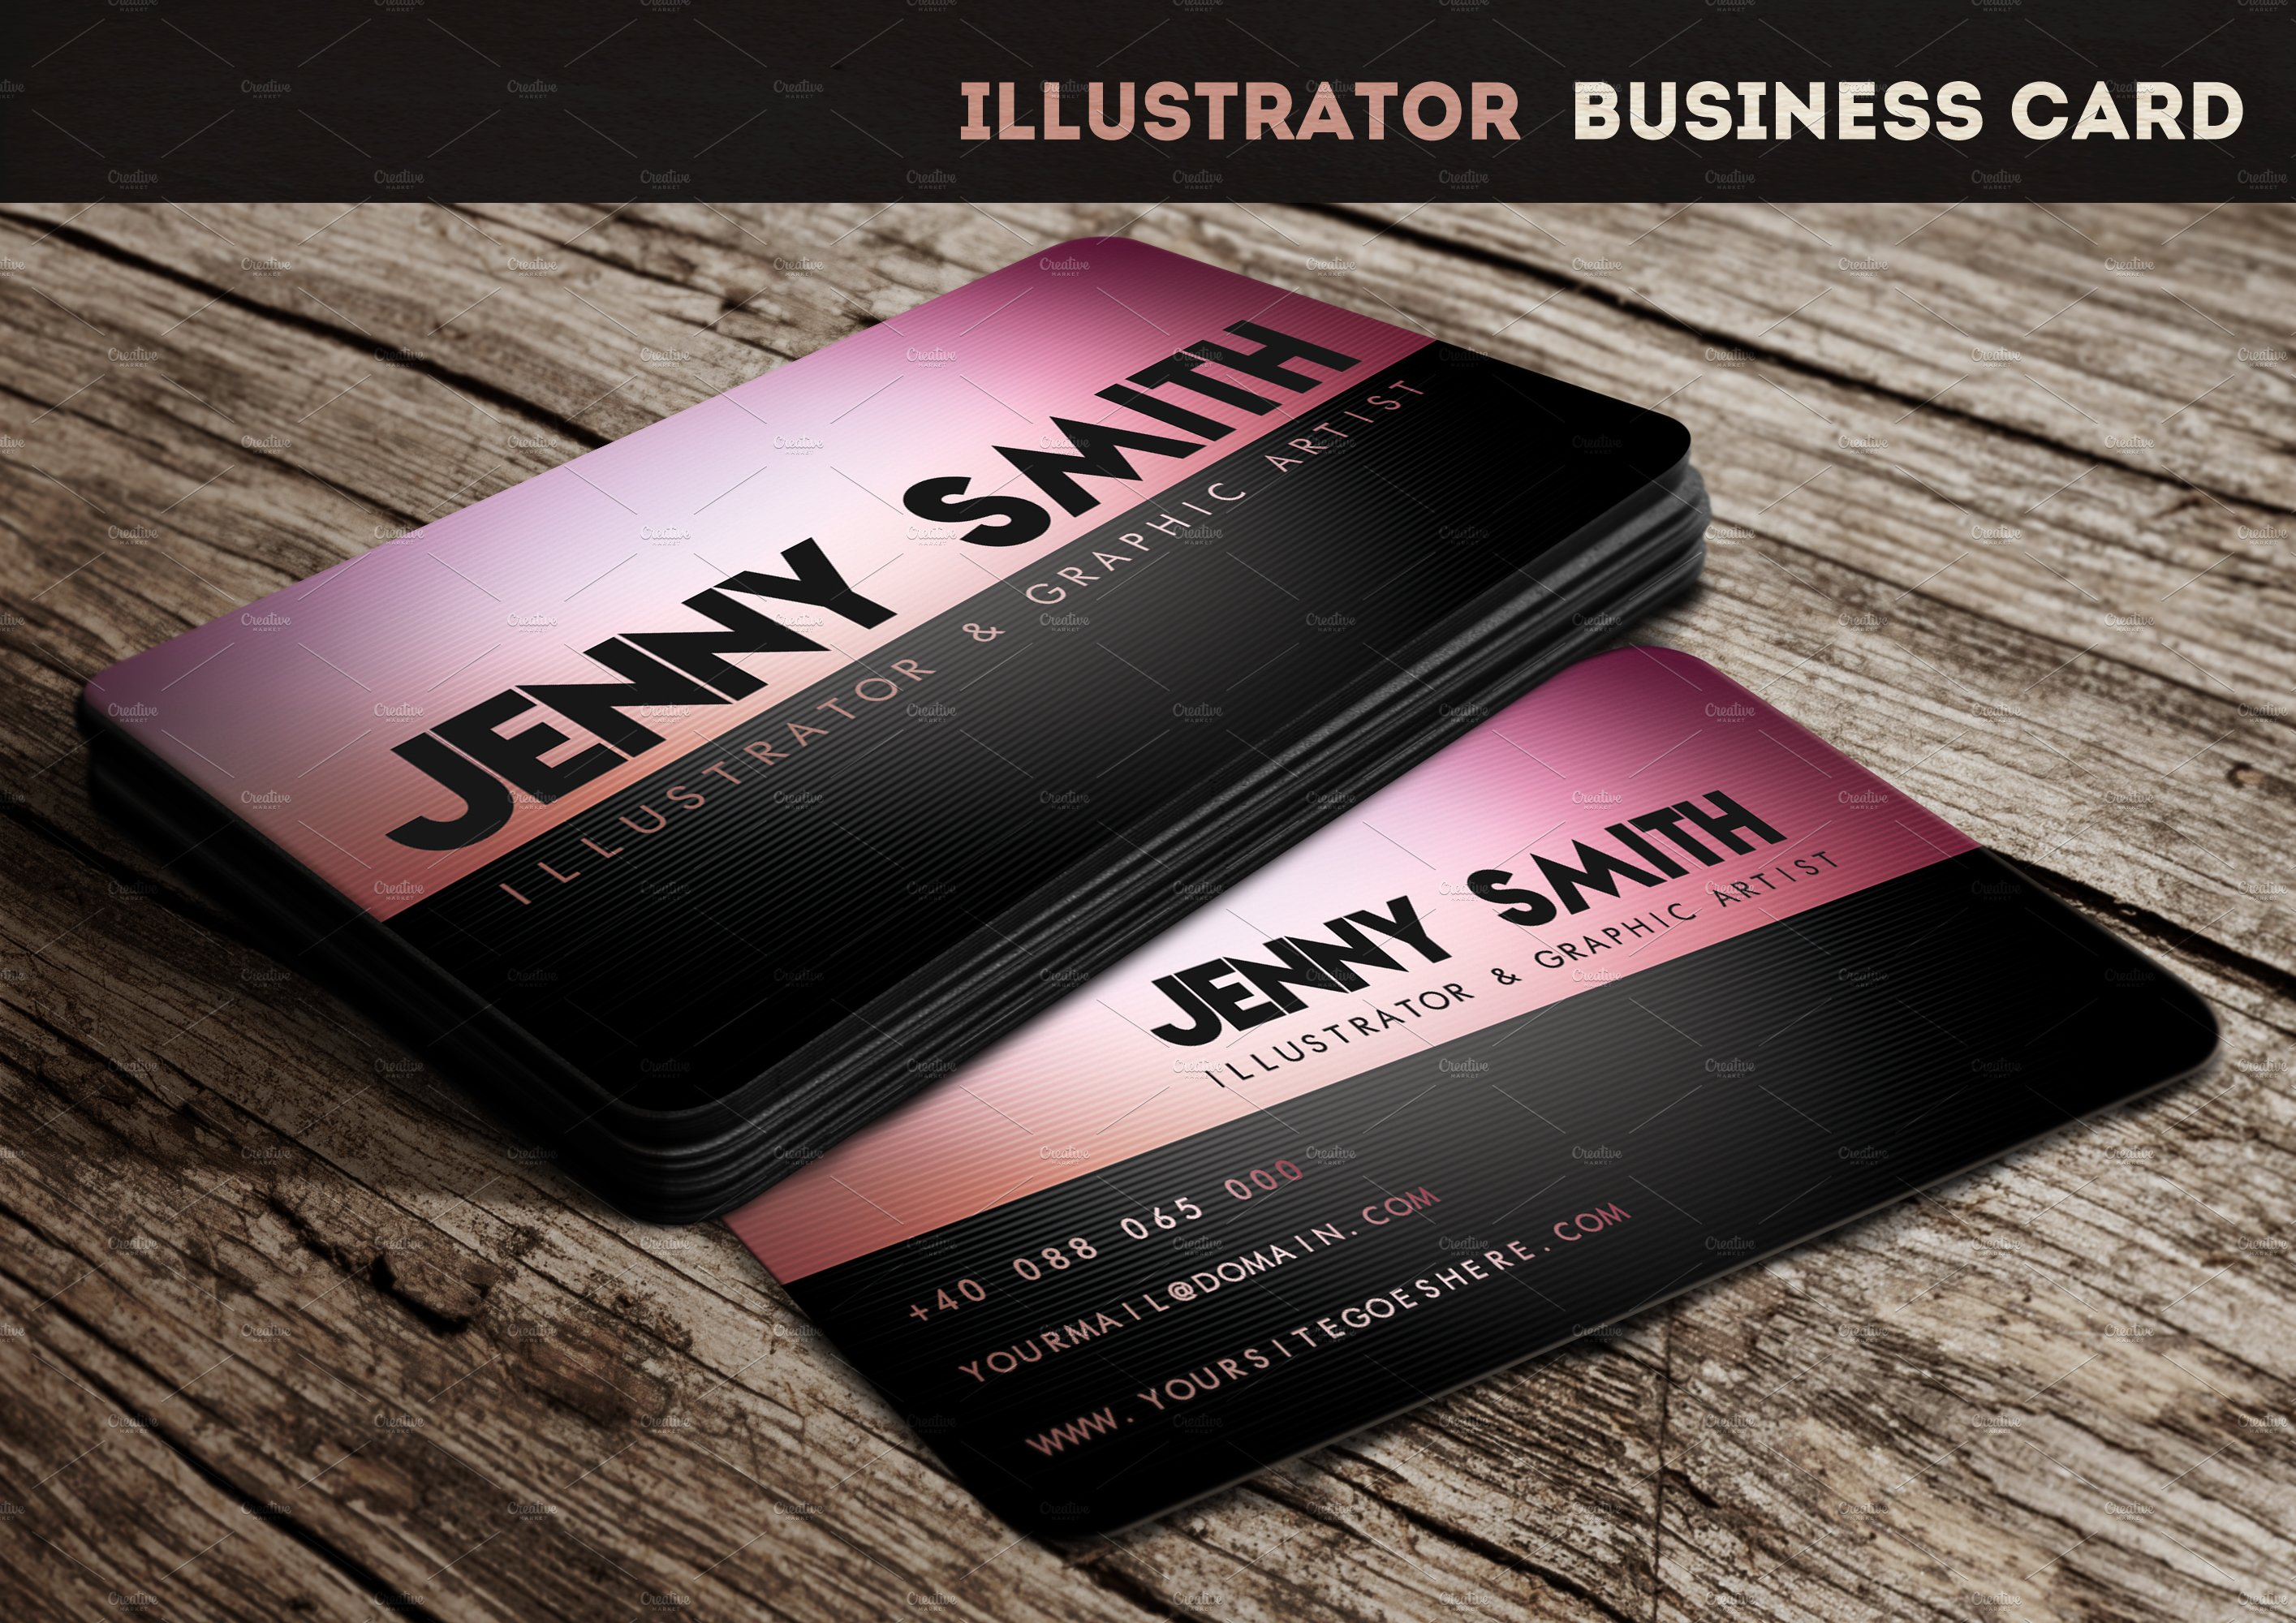 illustrator business card business card templates creative market. Black Bedroom Furniture Sets. Home Design Ideas